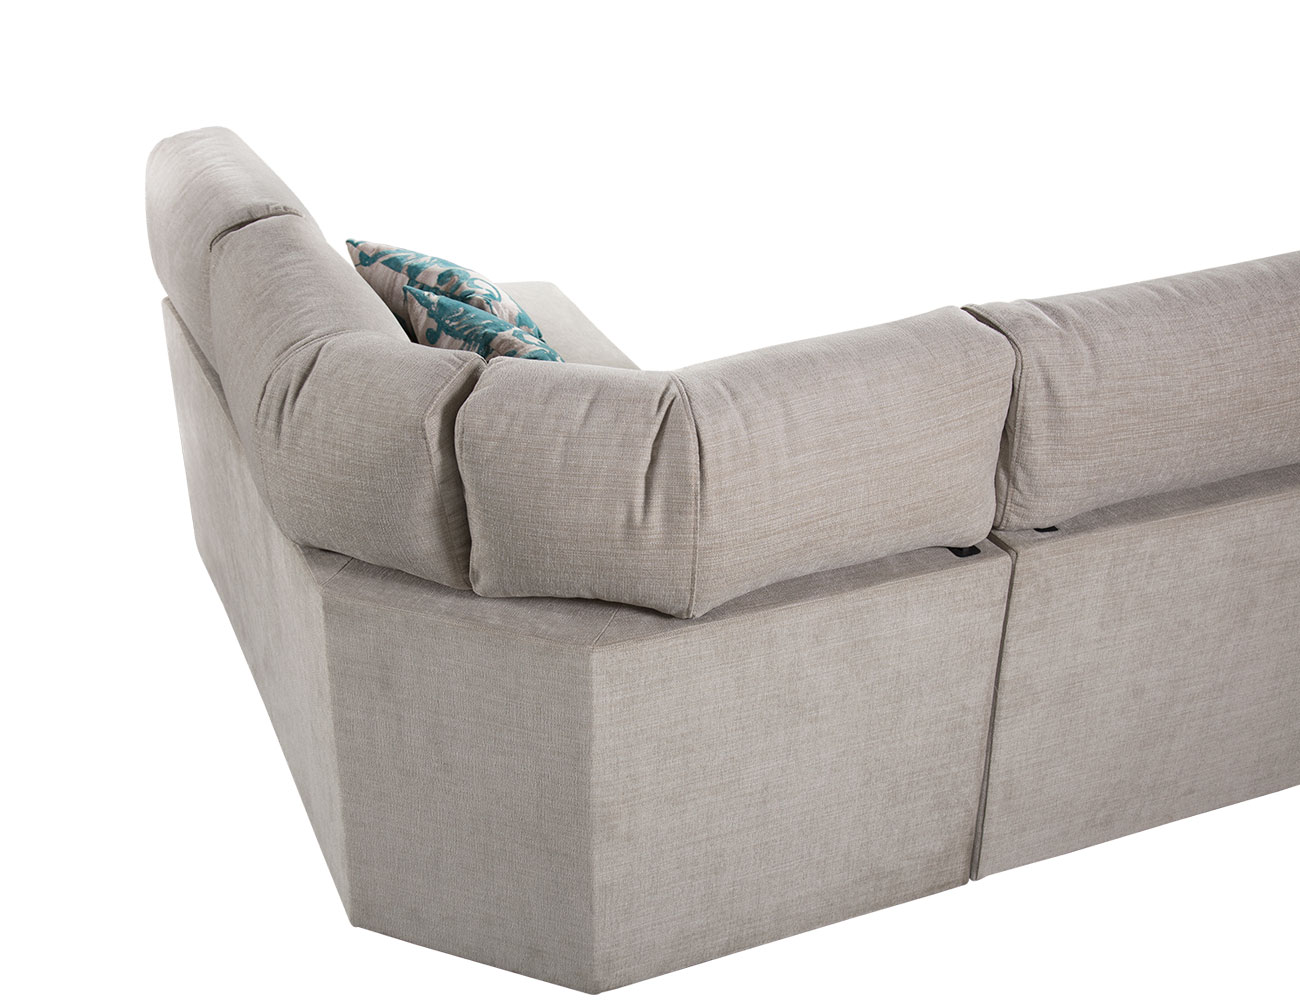 Sofa chaiselongue rincon